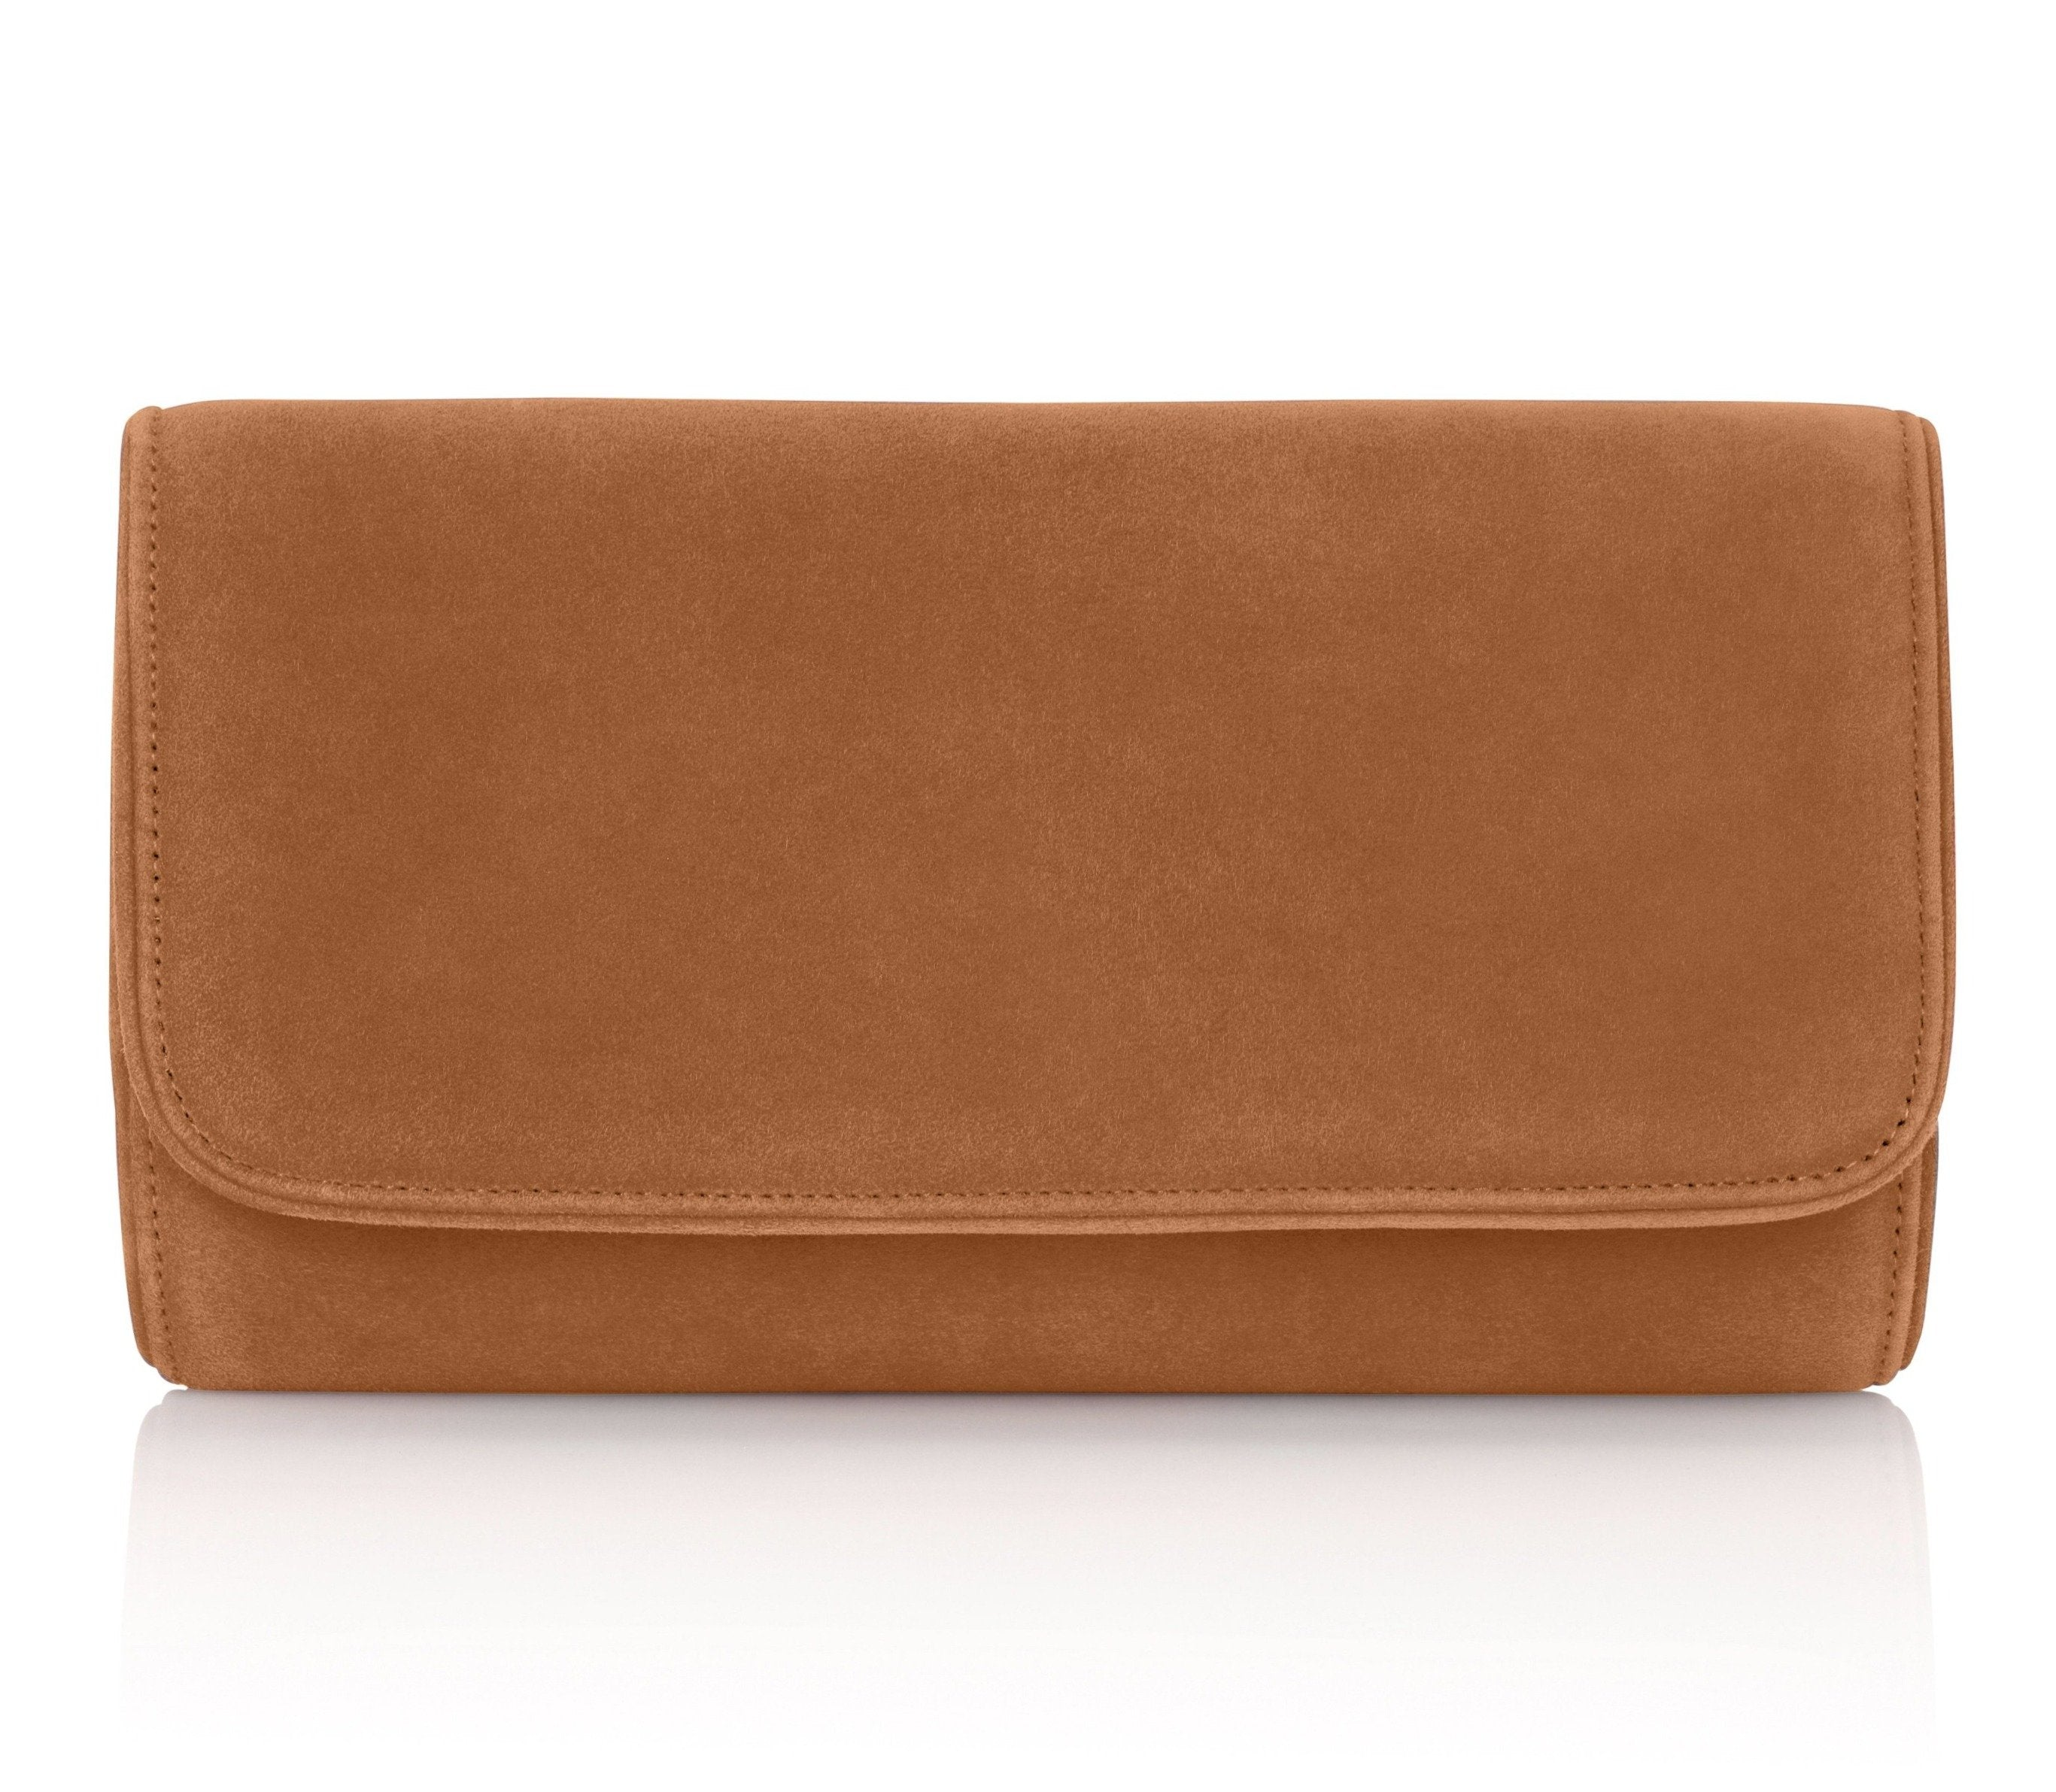 Natasha Clutch Bag in Saddle By Emmy London